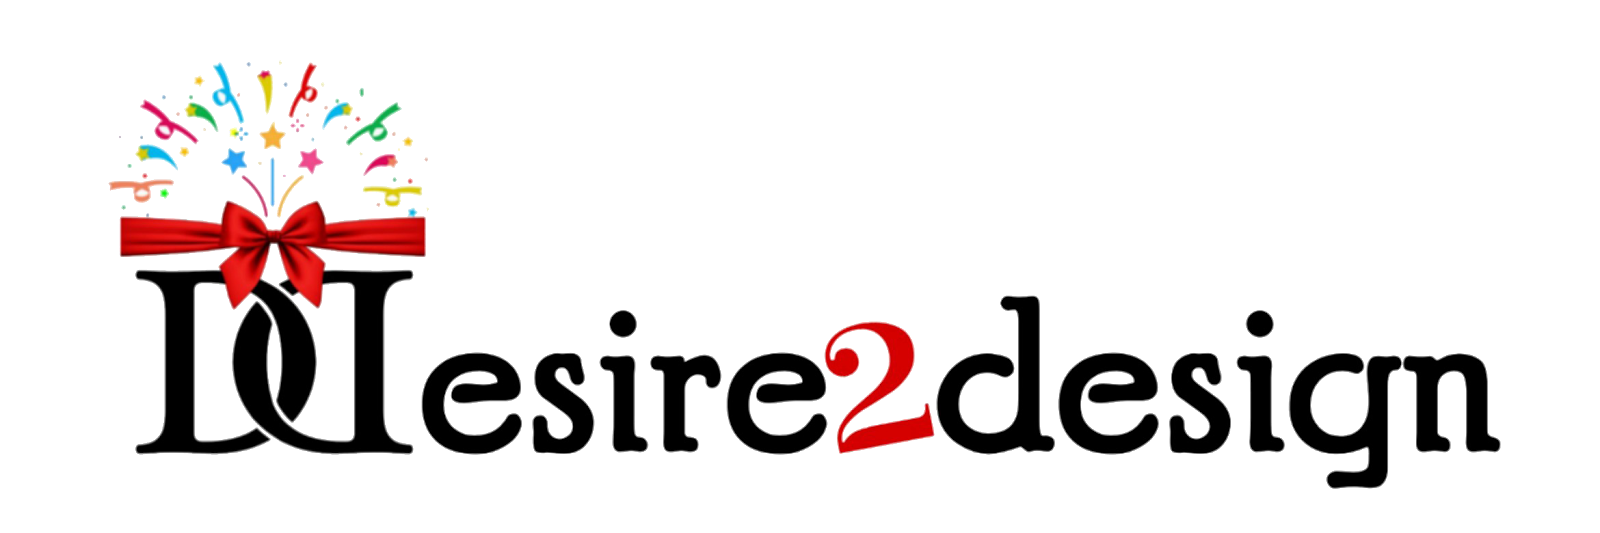 Desire2Design | Creative agency in Hyderabad